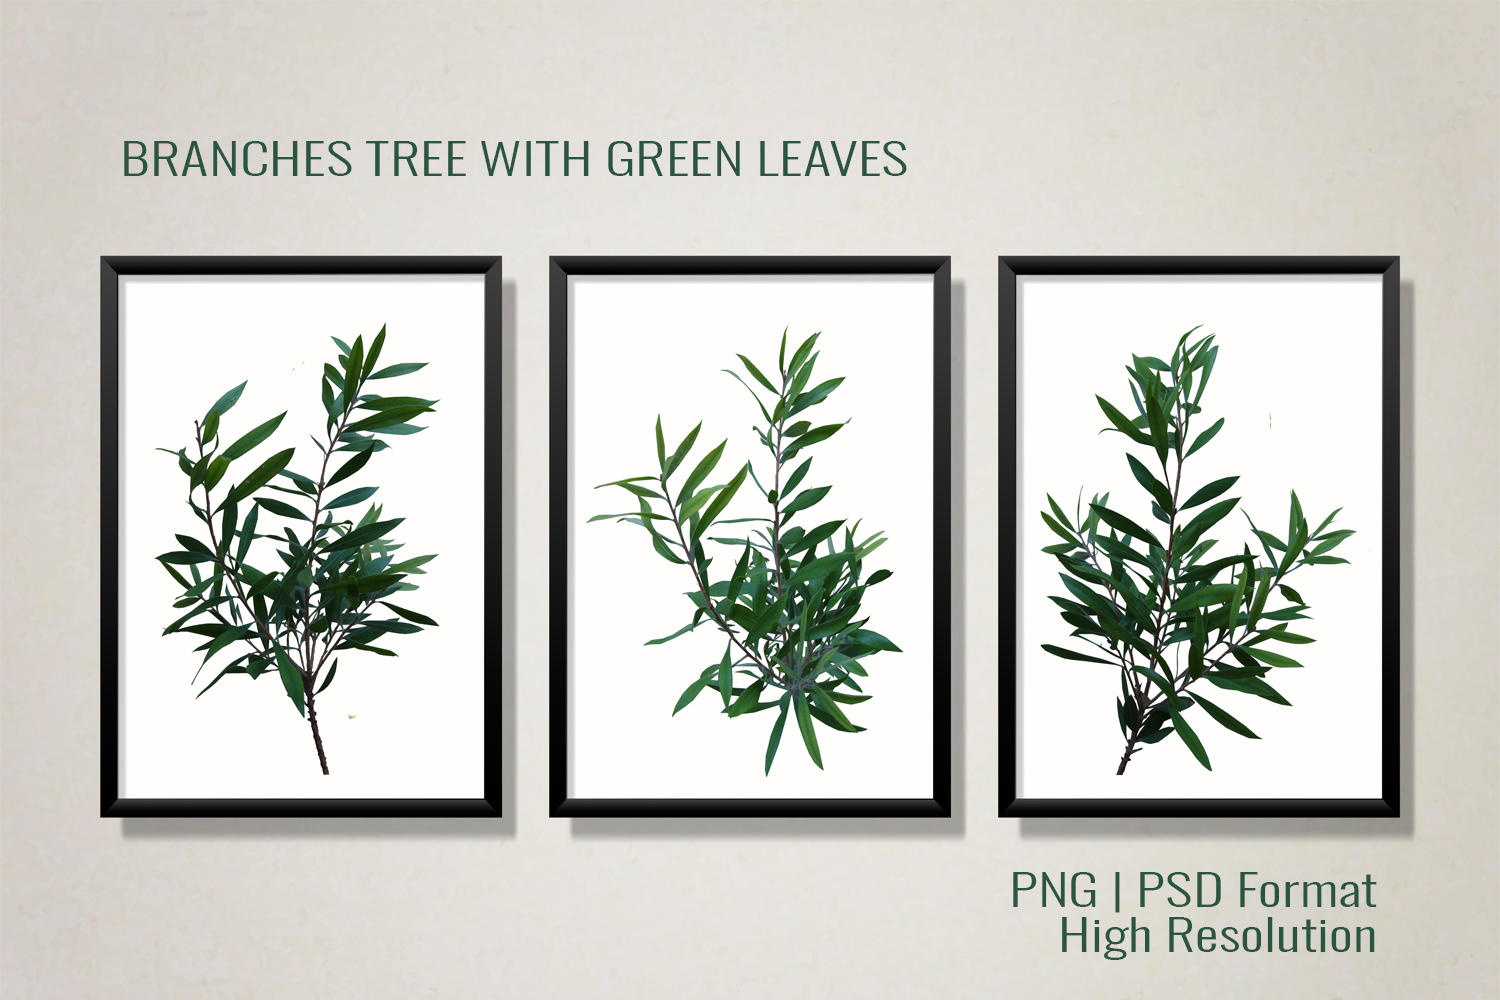 Three Branches Tree With Green Leaves PNG|PSD example image 4